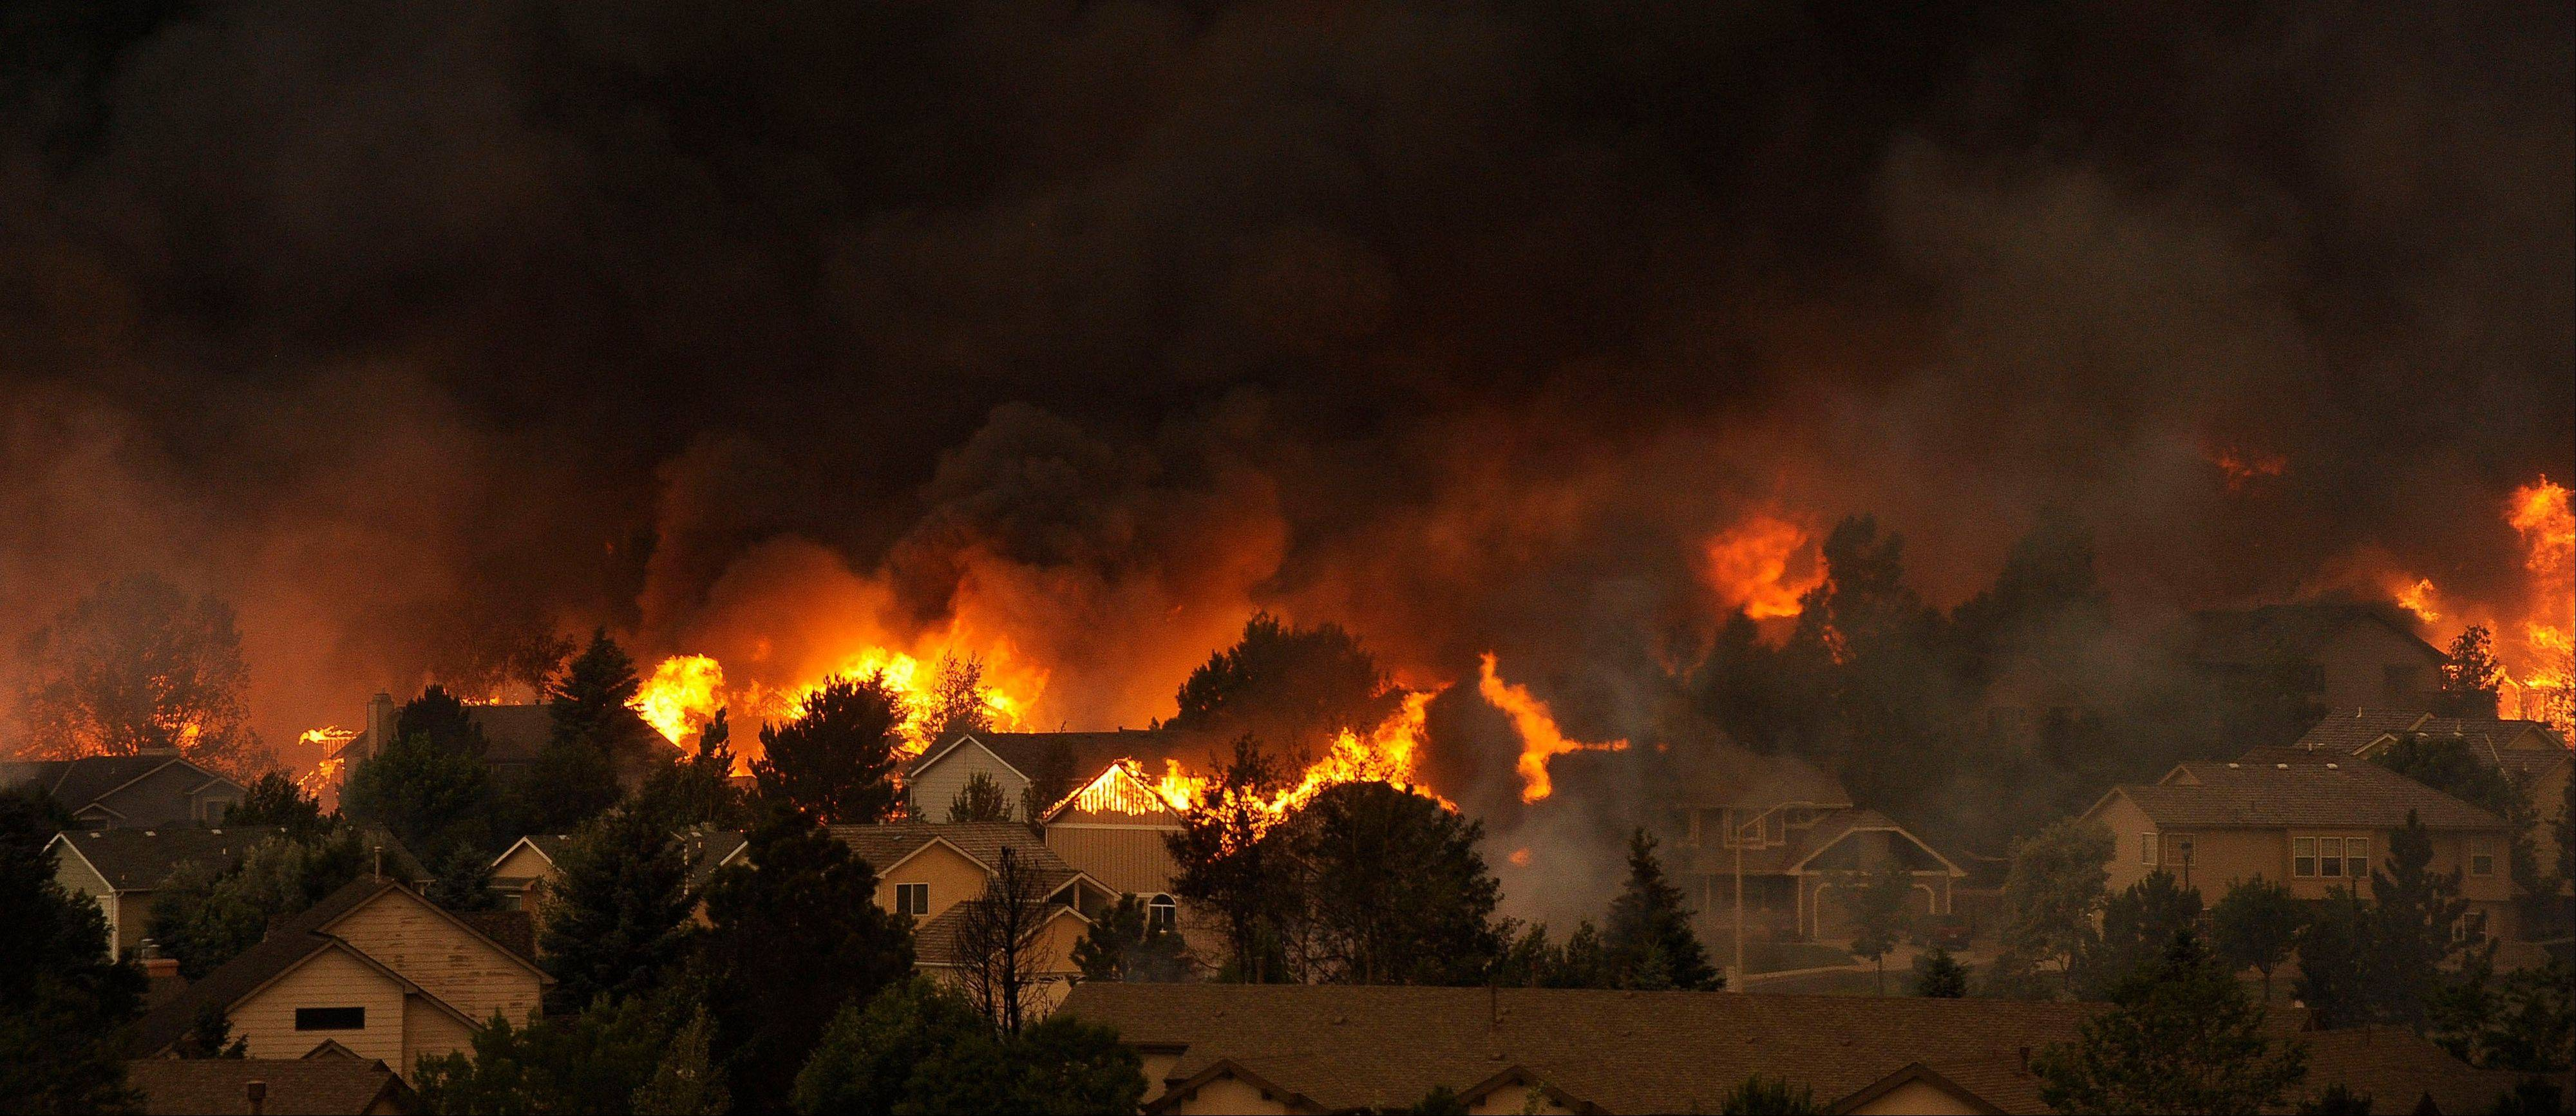 The Waldo Canyon fire burns an entire neighborhood in near the foothills of Colorado Springs, Colo. Tuesday, June 26, 2012. Colorado has endured nearly a week of 100-plus-degree days and low humidity, sapping moisture from timber and grass, creating a devastating formula for volatile wildfires across the state and punishing conditions for firefighters.